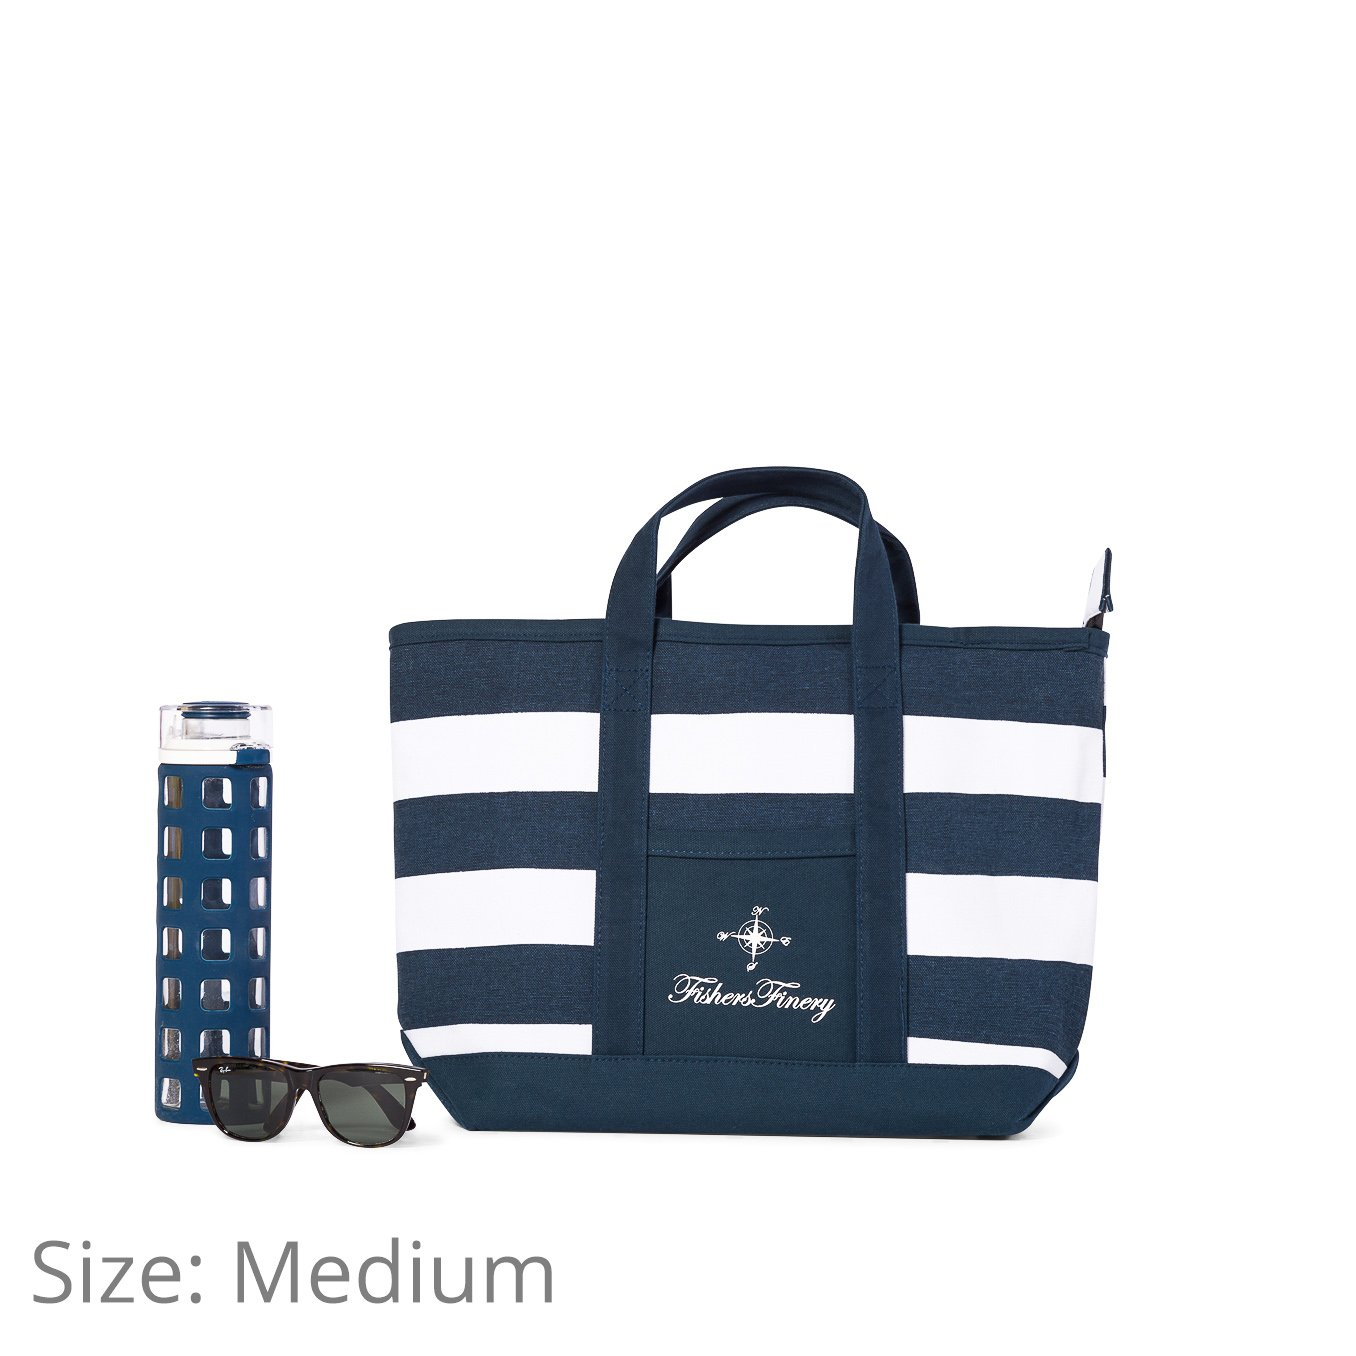 Fishers Finery Canvas Tote with Zipper and Lining with interior Pockets; Multi Sizes and Colors (Navy, S) by Fishers Finery (Image #7)